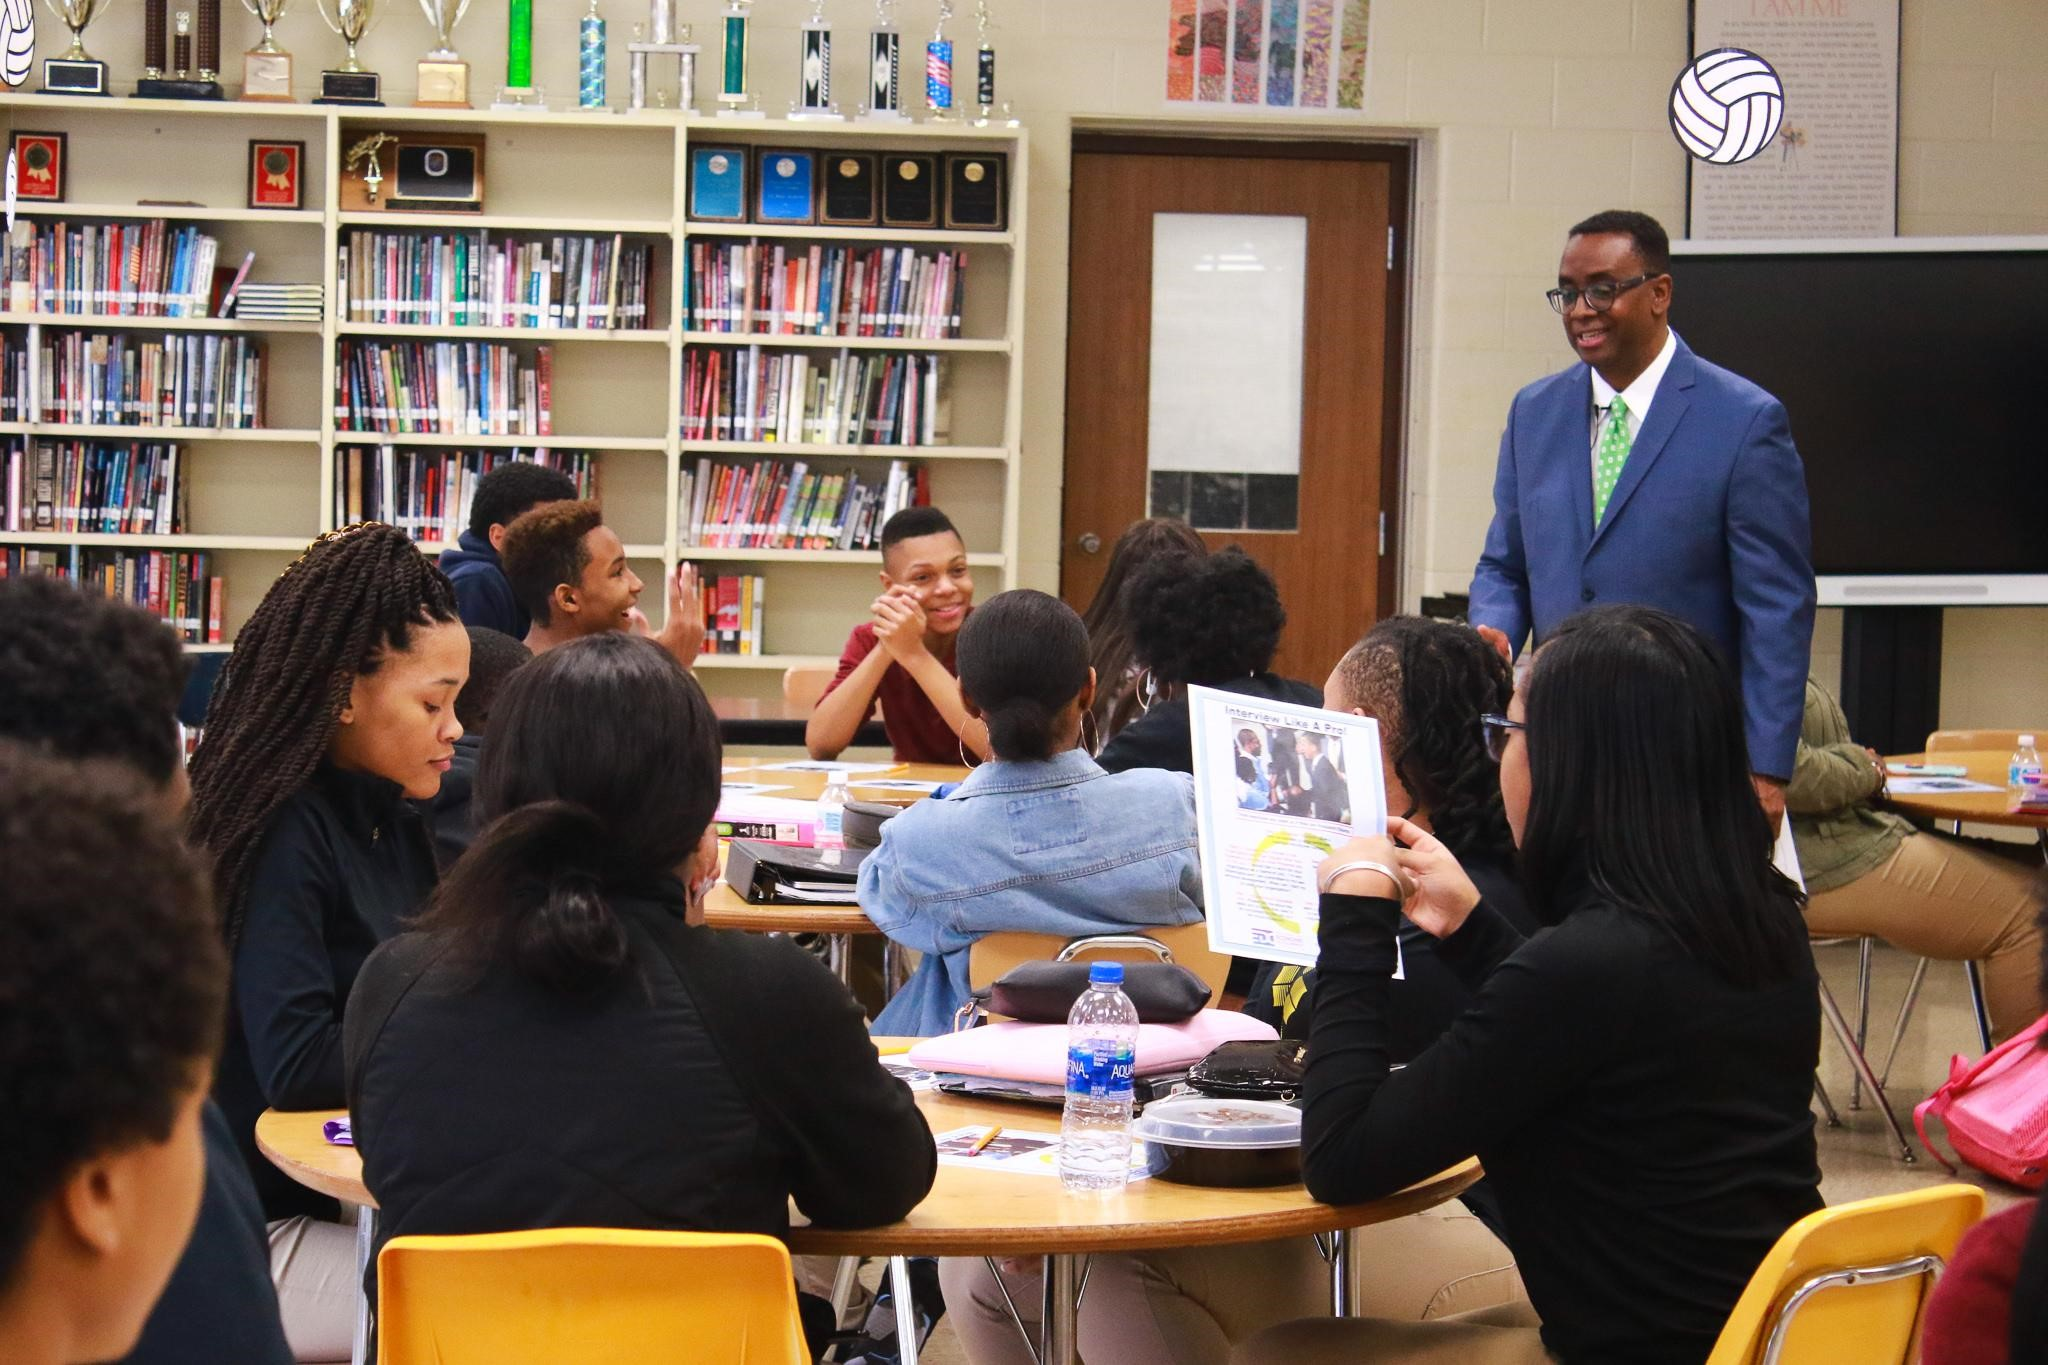 Jim Coleman, President, Prince George's County Economic Development Corporation, hosts a workshop for P-TECH students.